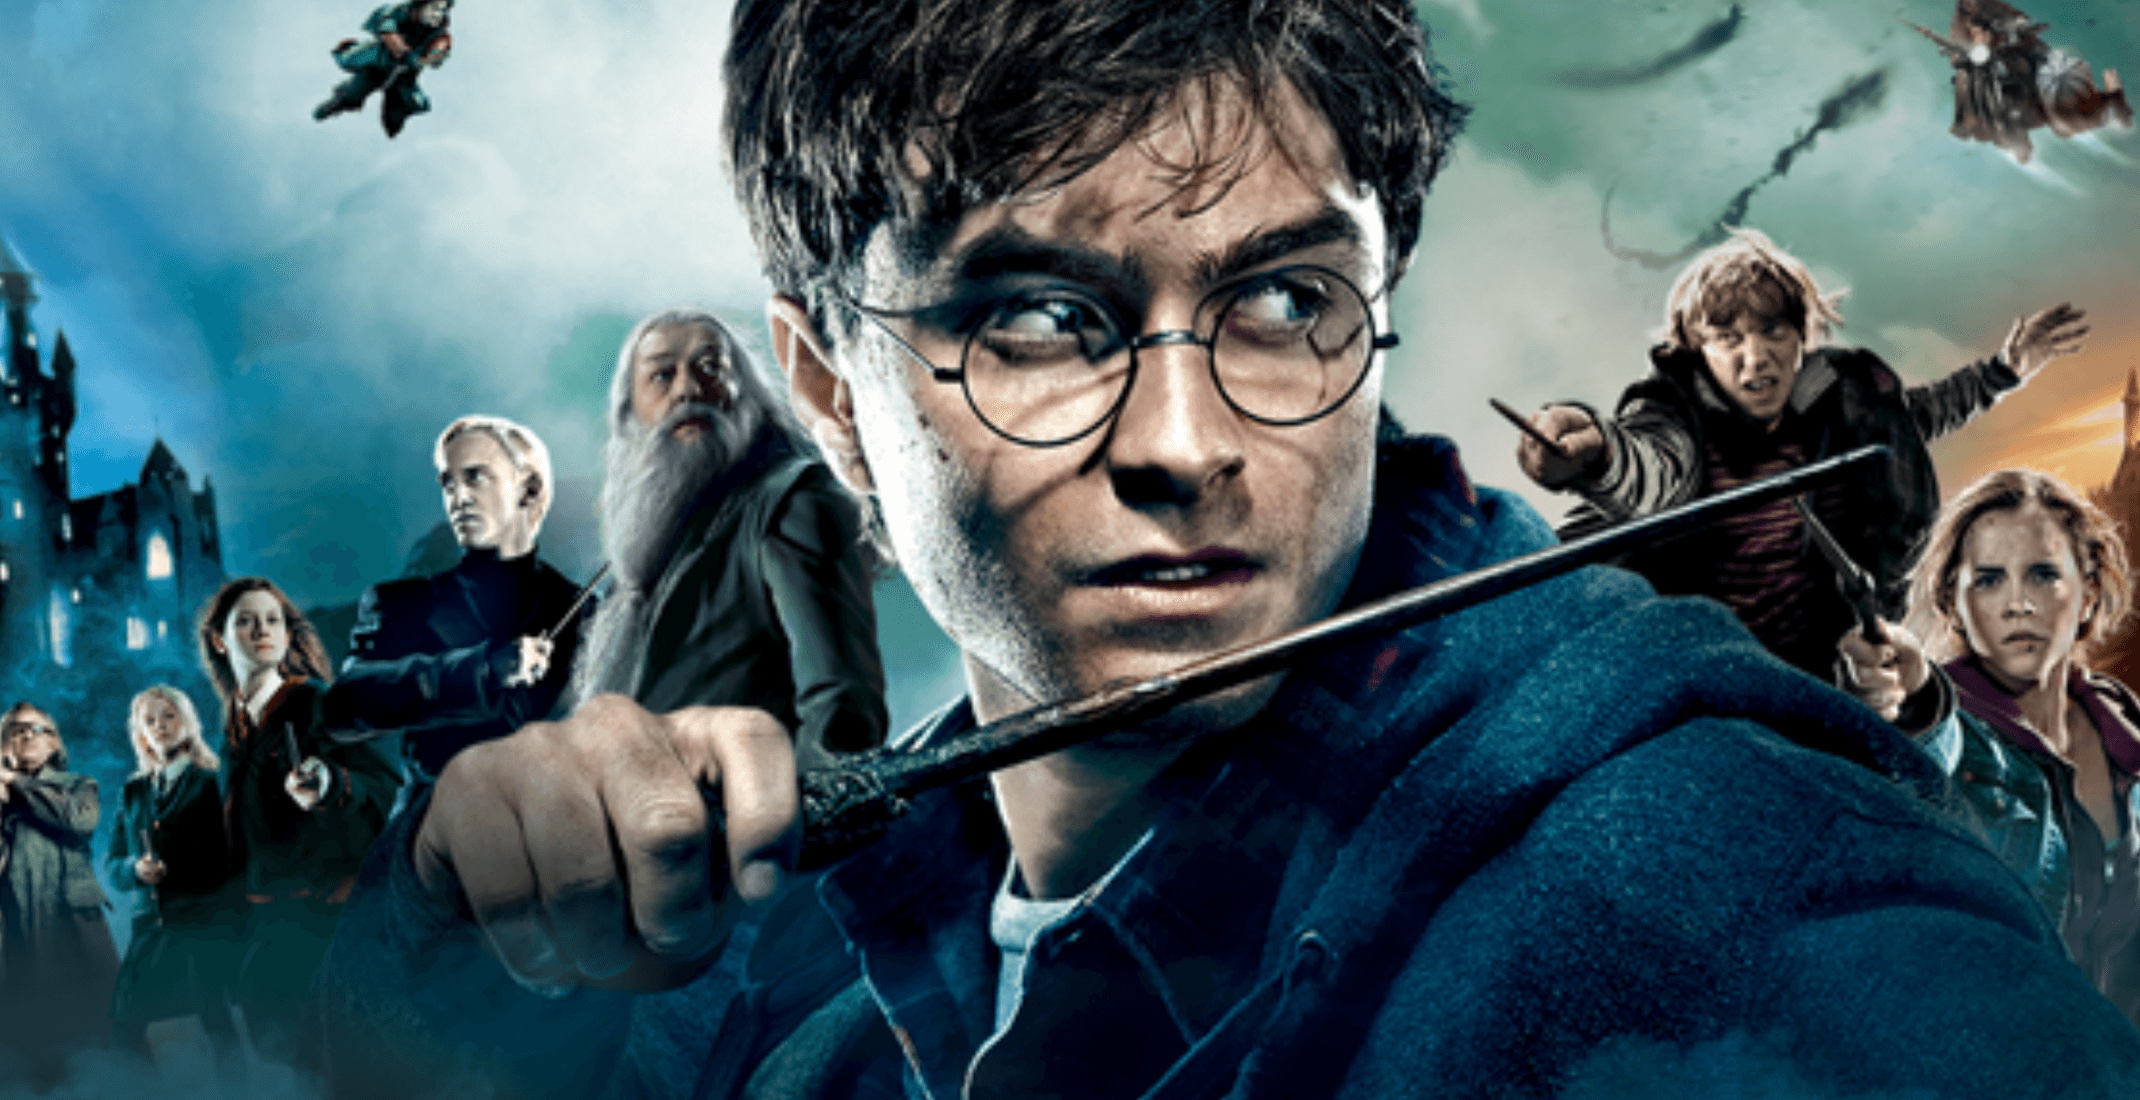 A Harry Potter trivia night is happening in Vancouver this week